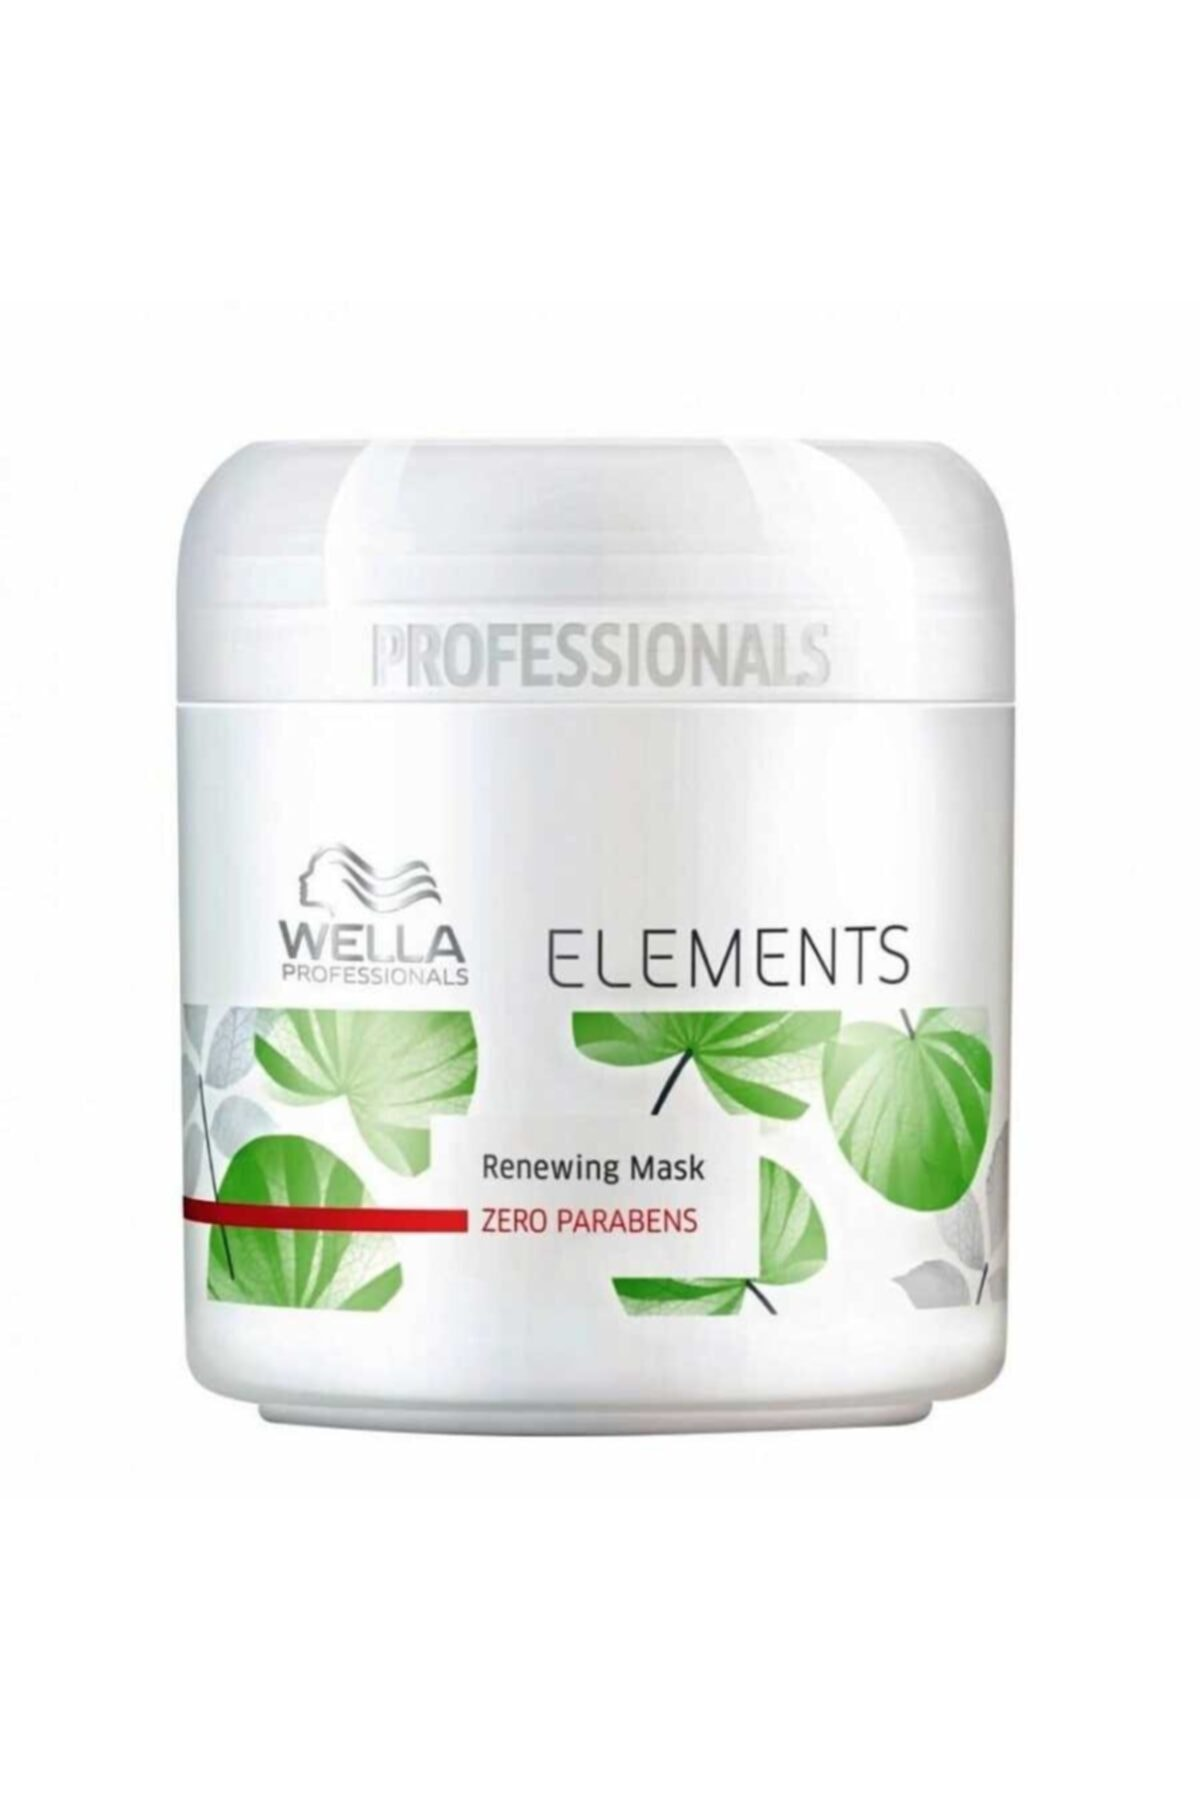 Wella Elements Renewing Yenileyici Maske 150ml 4084500126091 1